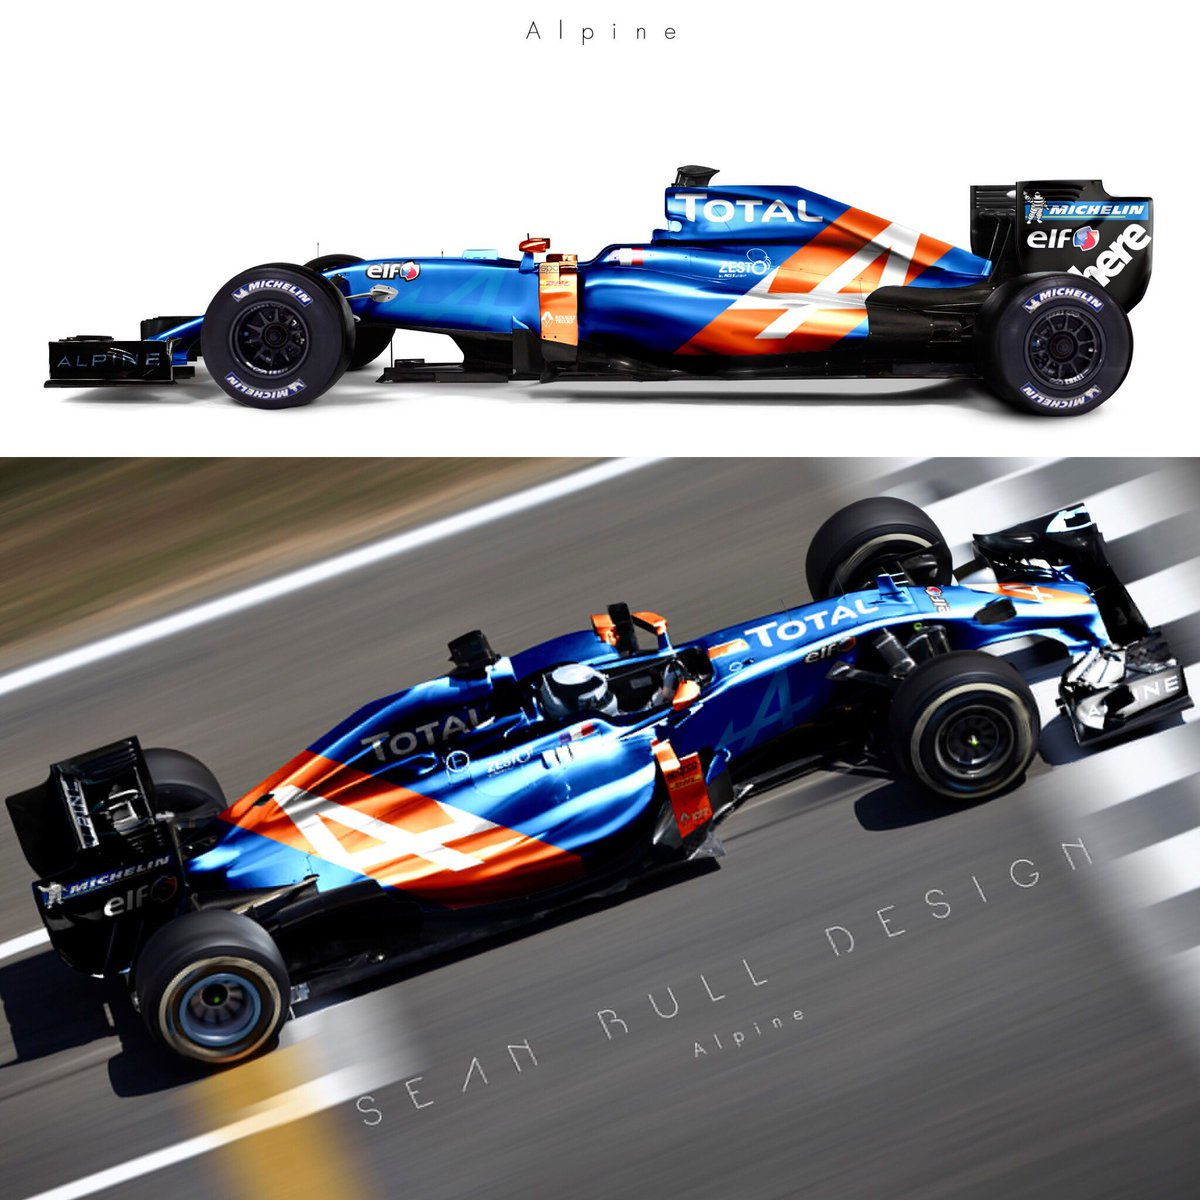 Sean Bull Design On Twitter Anyone Else Rather See The Renaultsportf1 Team Rebranded Alpine With This Colour Scheme On Offer Renault F1 Formulaone Formula1 Https T Co Xswbgbu08v